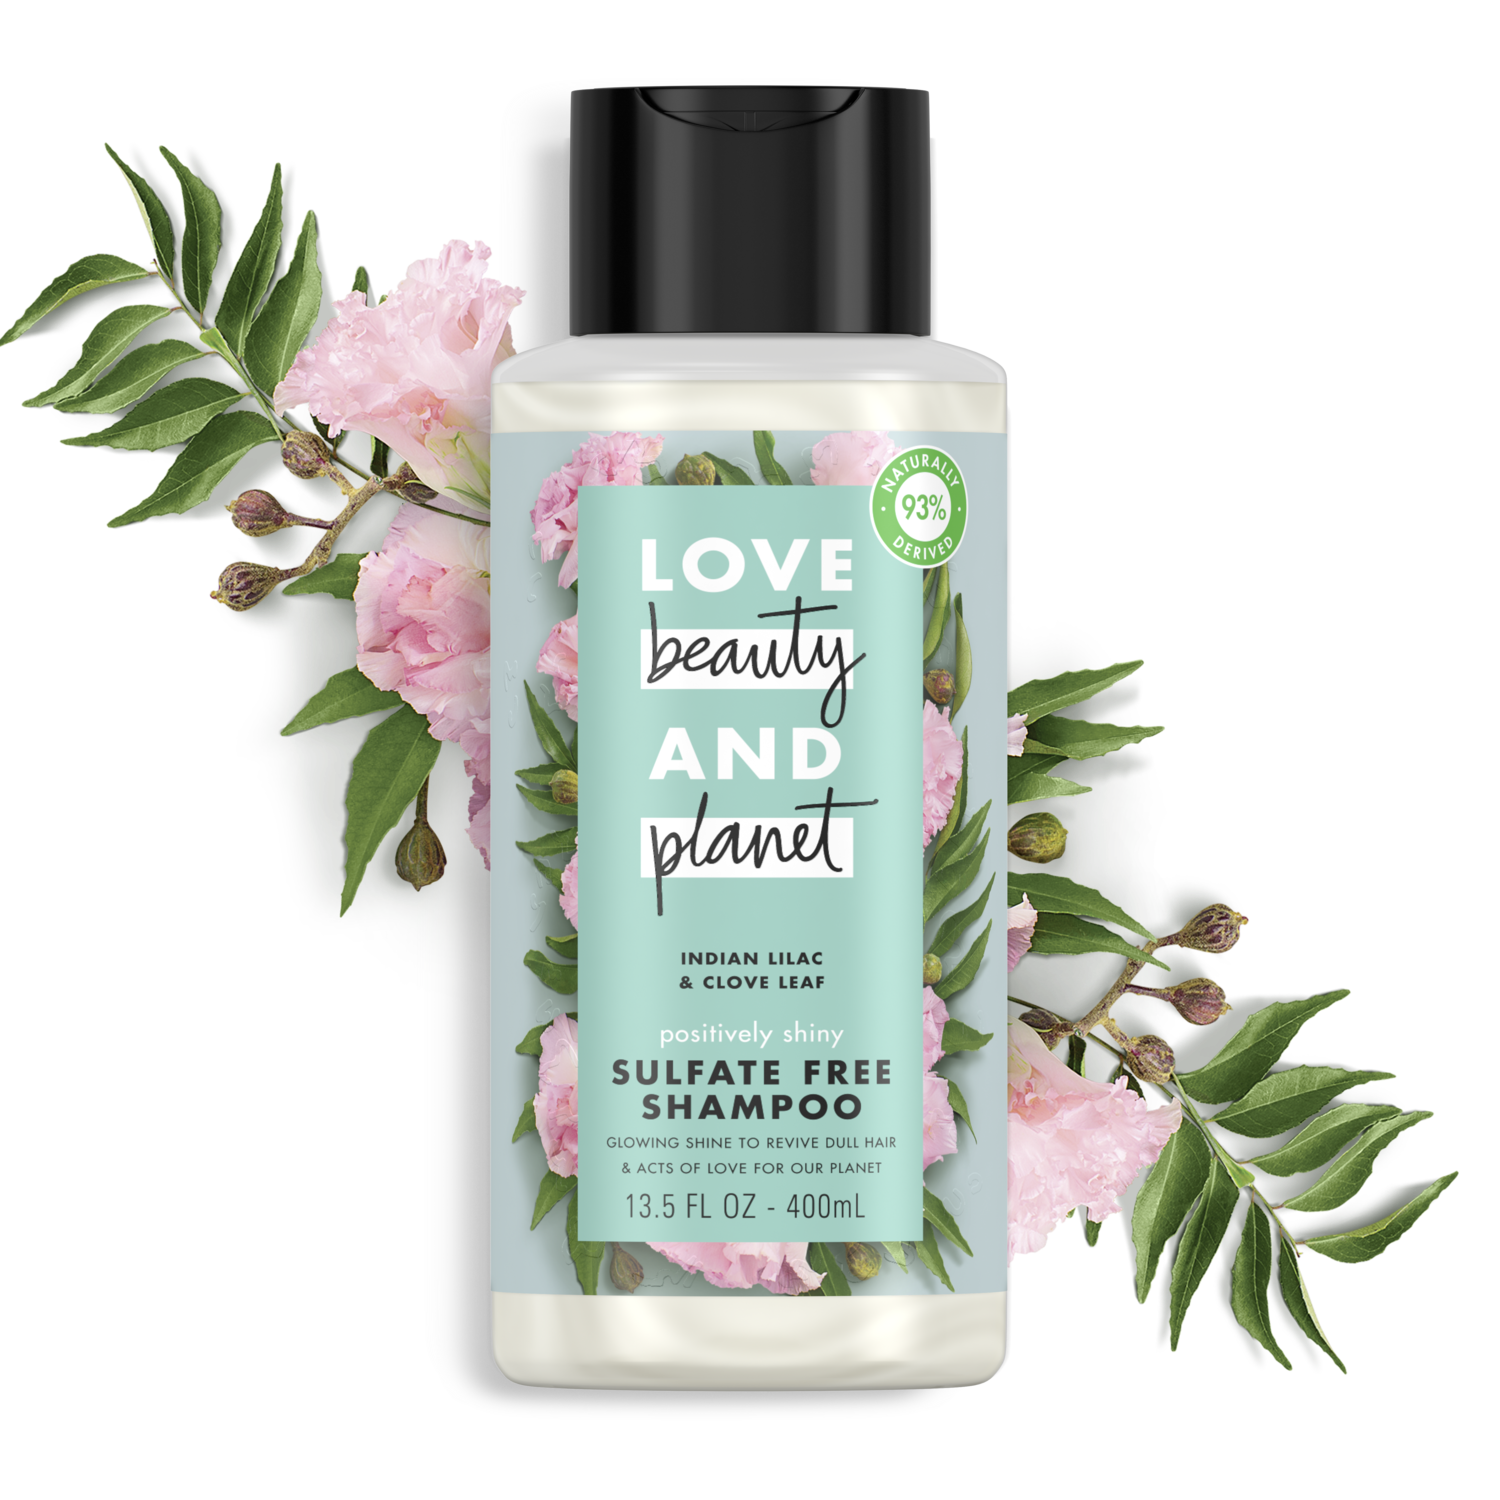 Lilac And Clove Sulfate Free Shampoo Love Beauty And Planet